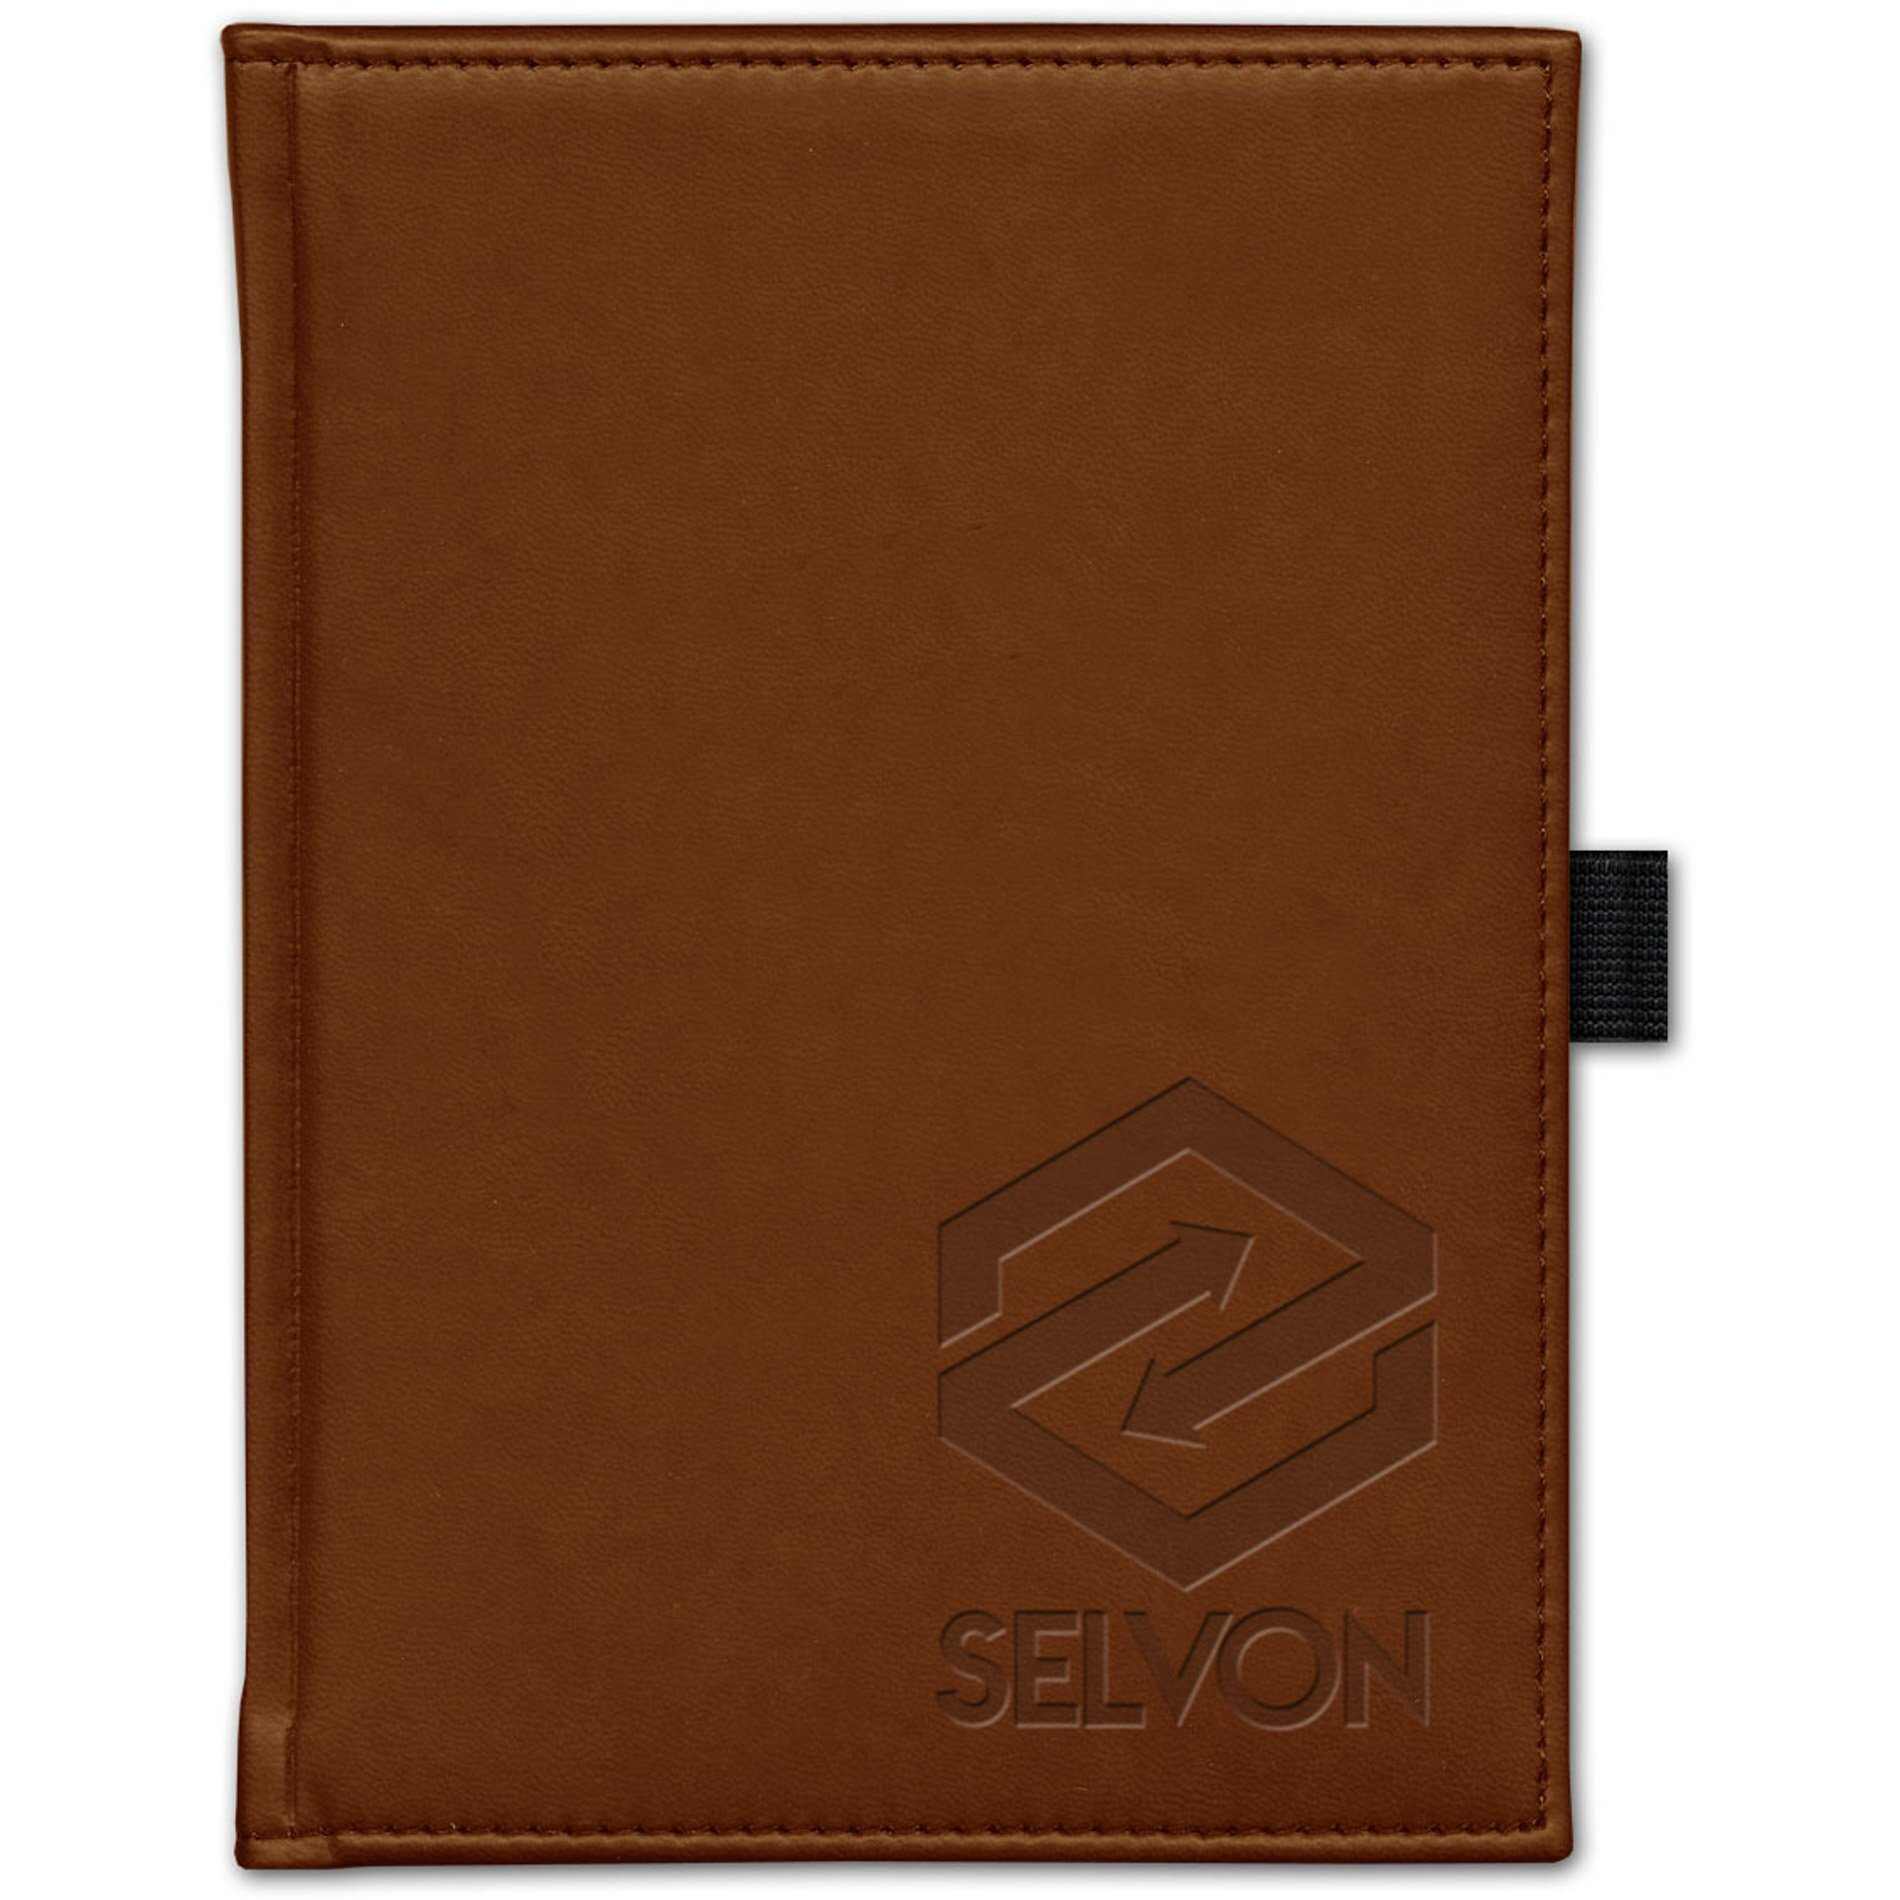 Pedova Italian UltraHyde Bound JournalBook™